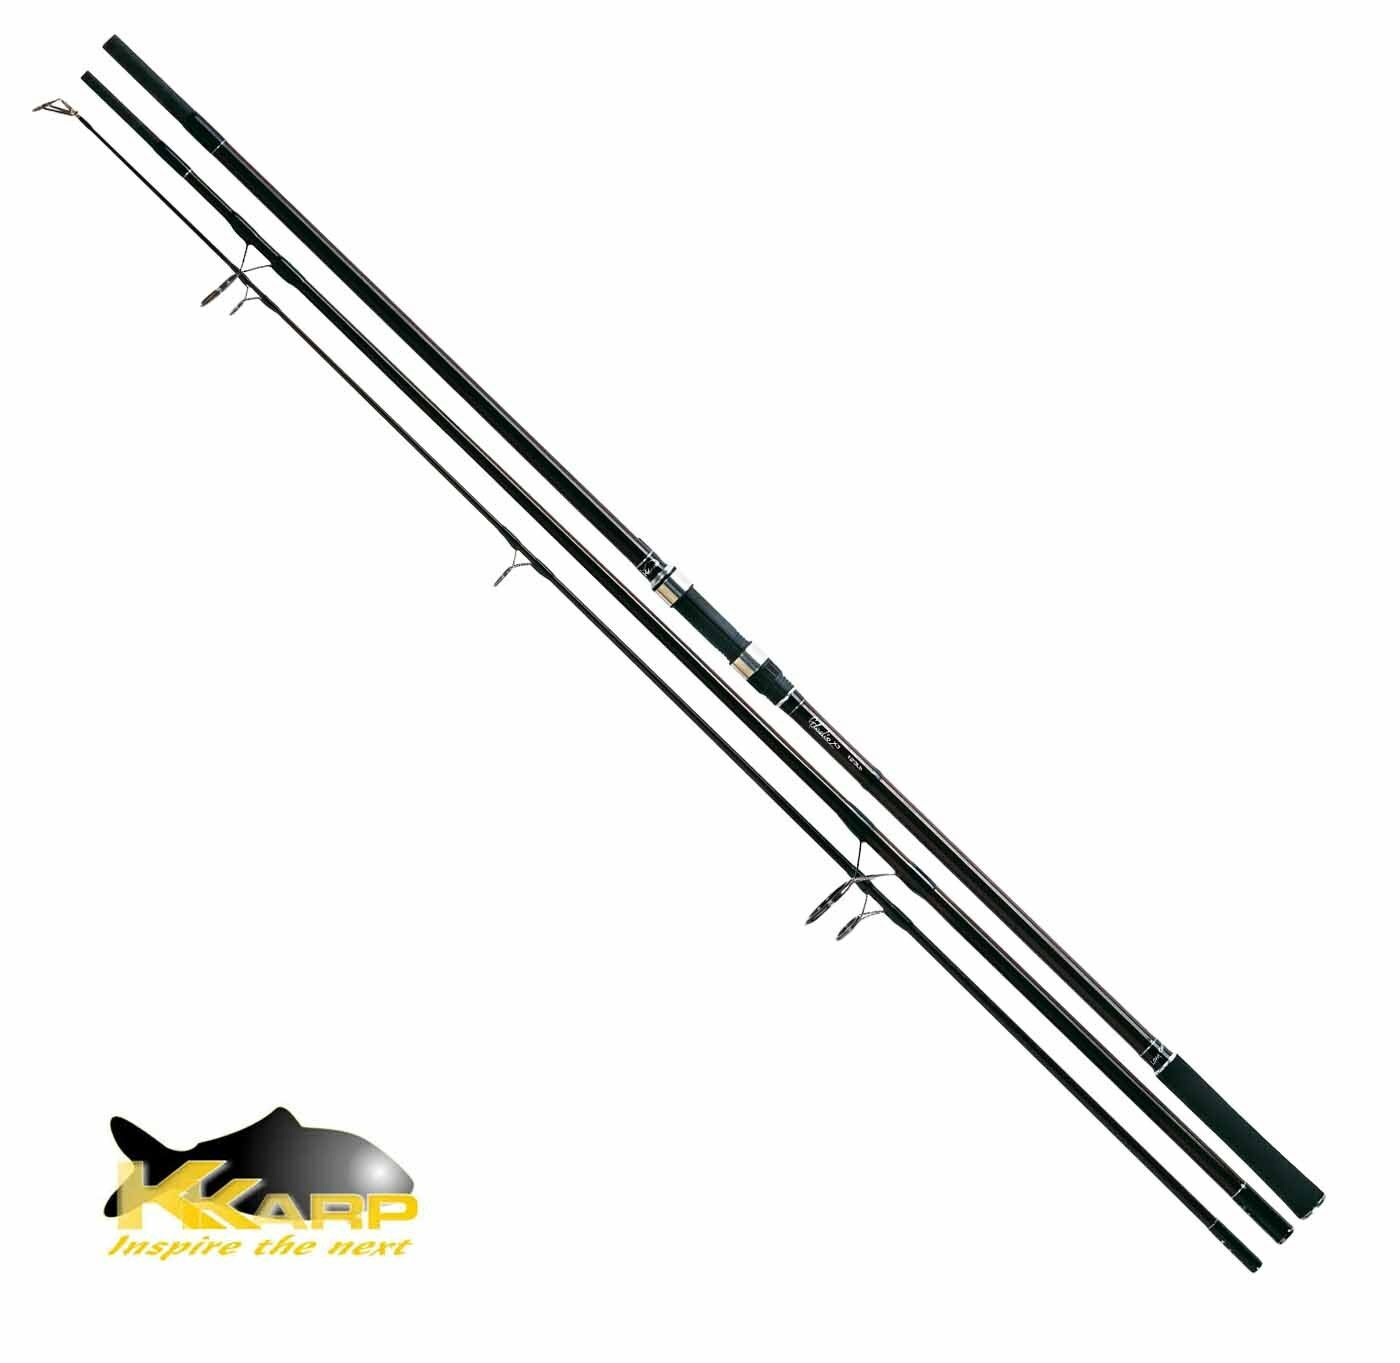 15838360 Canna KKarp Gladio X3 360 cm 3.00 Lbs Pesca Carpfishing SHM Carbo CSP